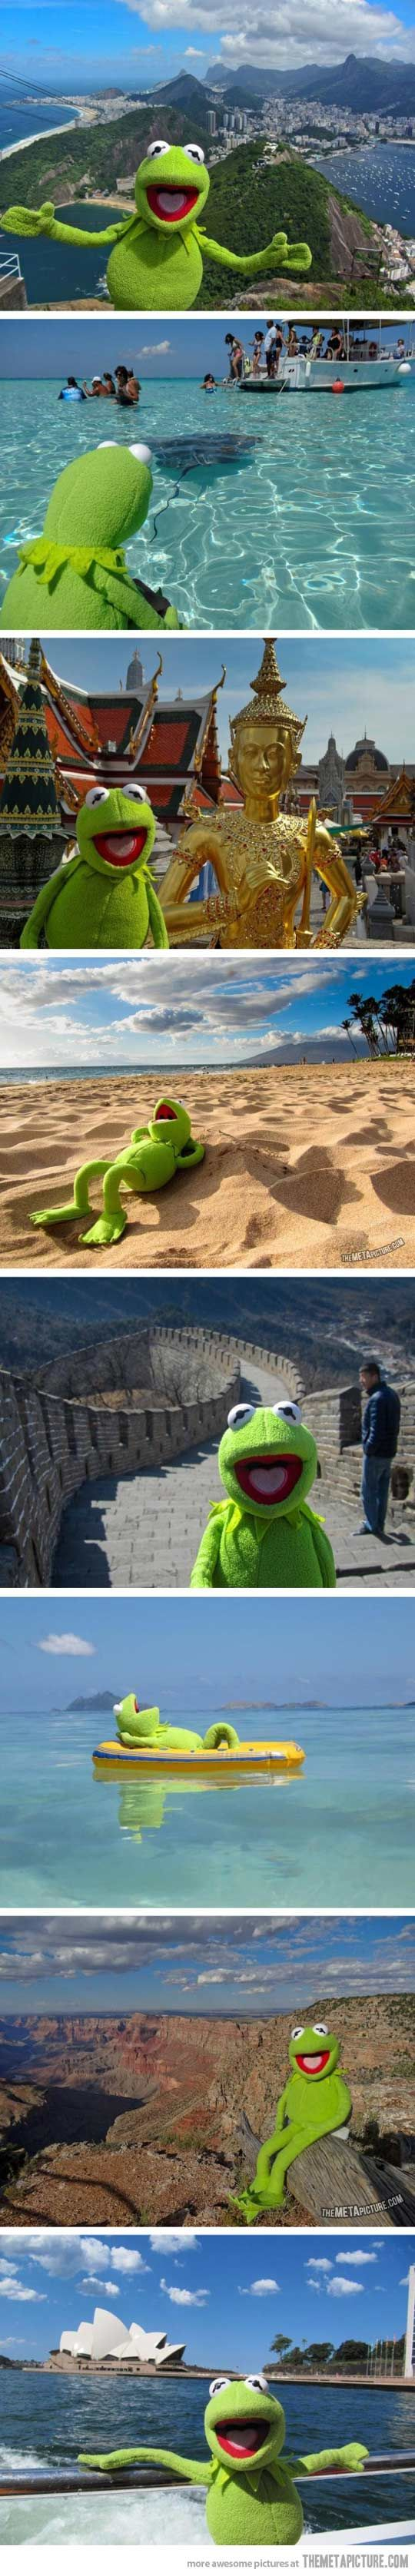 Kermit the Frog's vacation around the world…